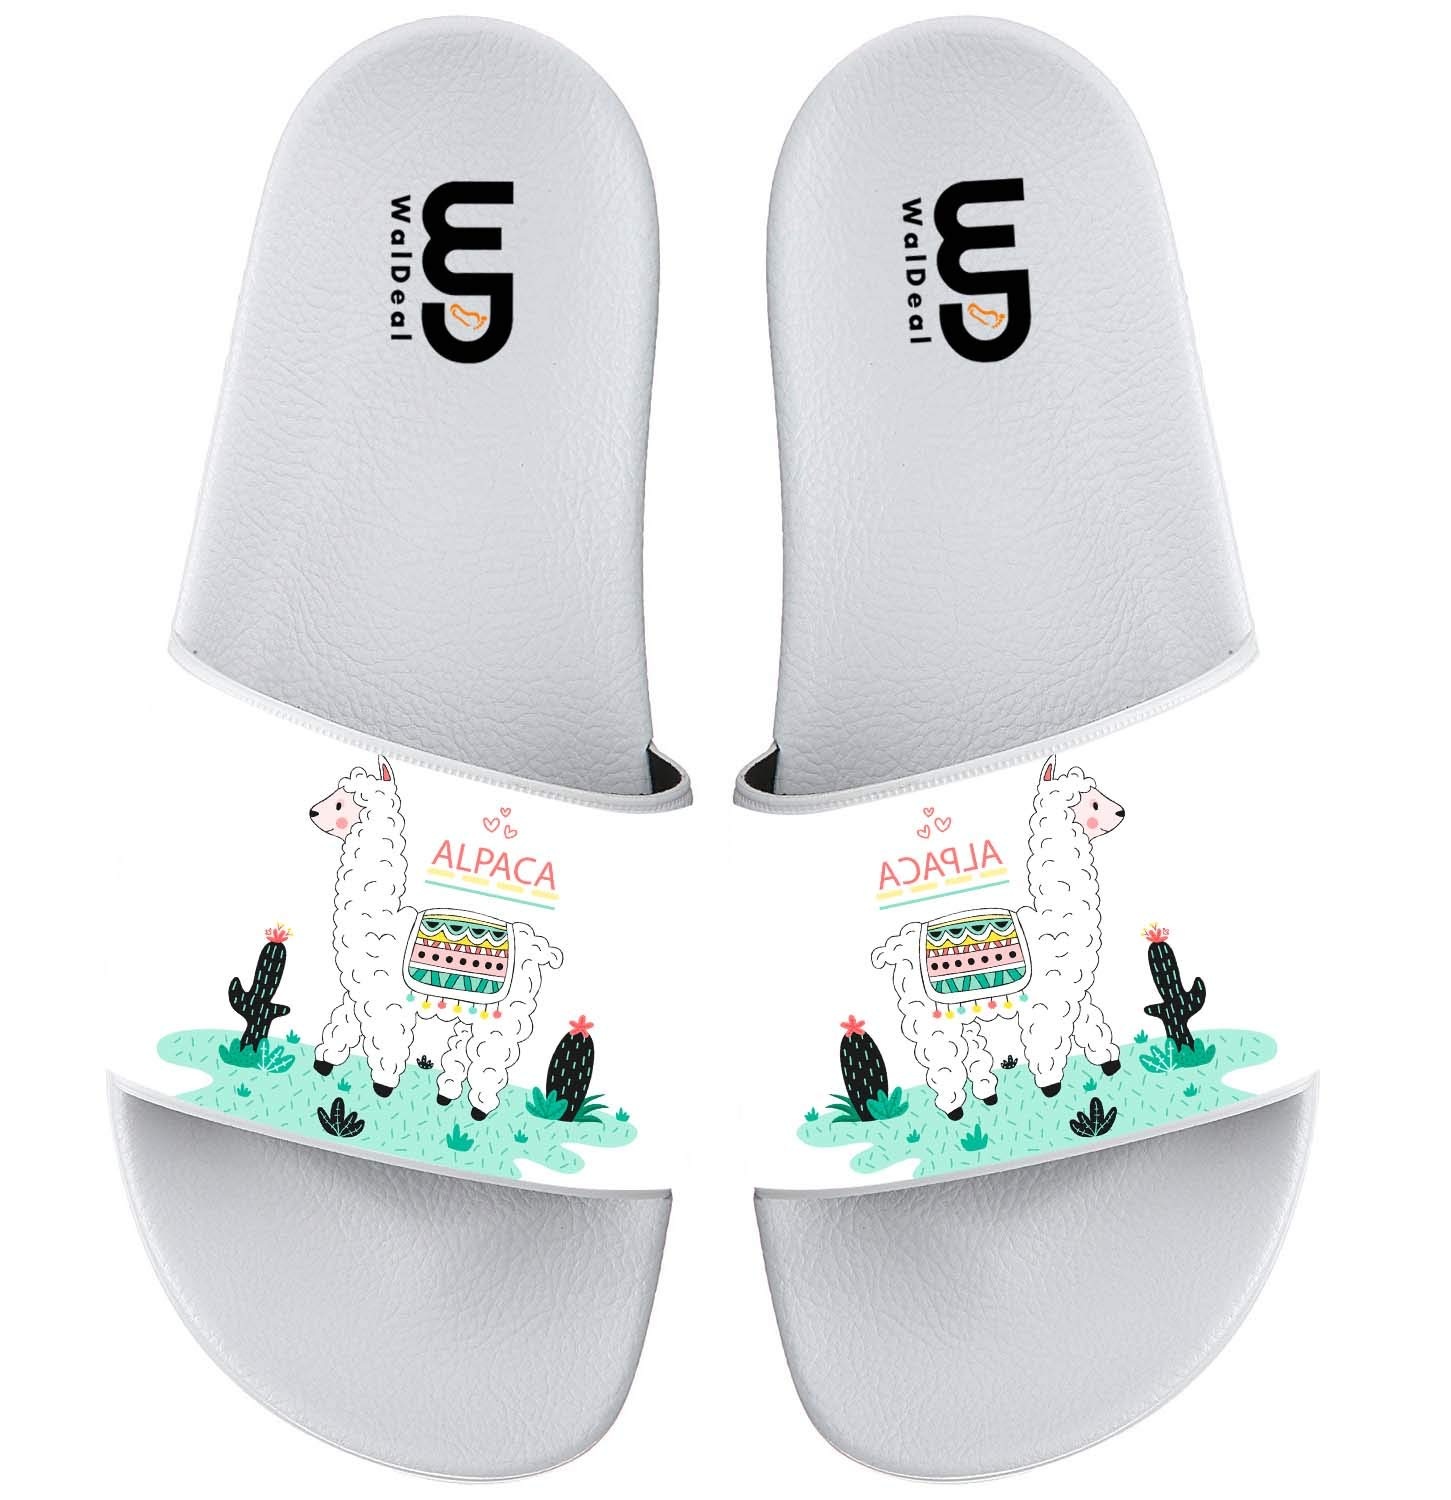 Lovely Hand Drawn Alpaca Llama Summer Slide Slippers For Girl Boy Kid Non-Slip Sandal Shoes size 2